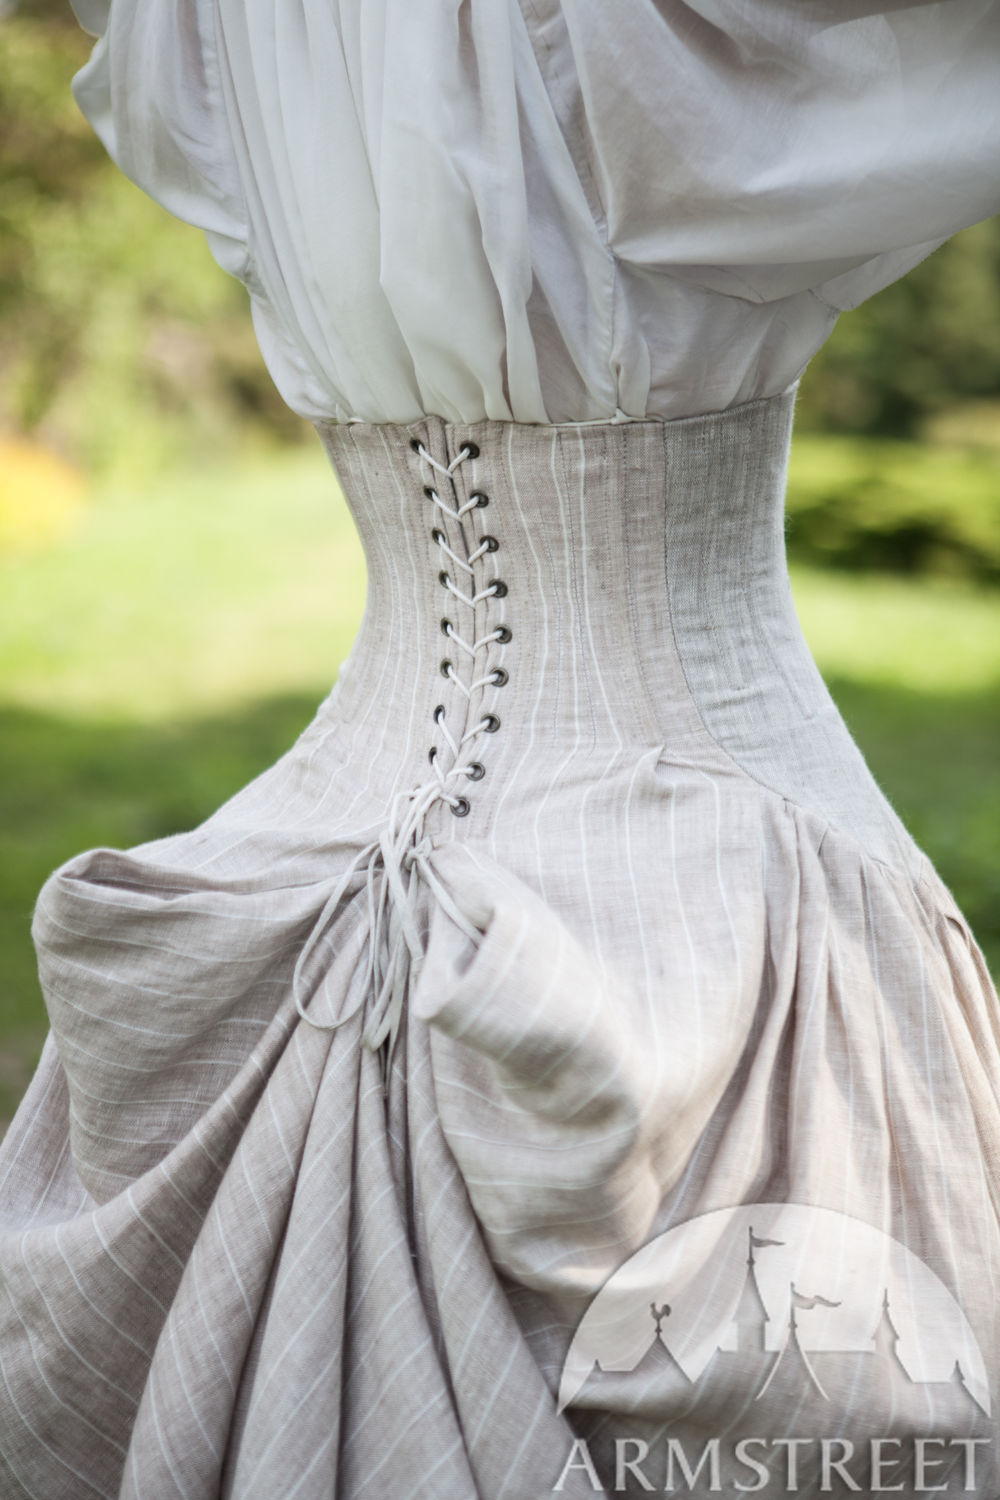 The noble look of the corset skirt Snow White